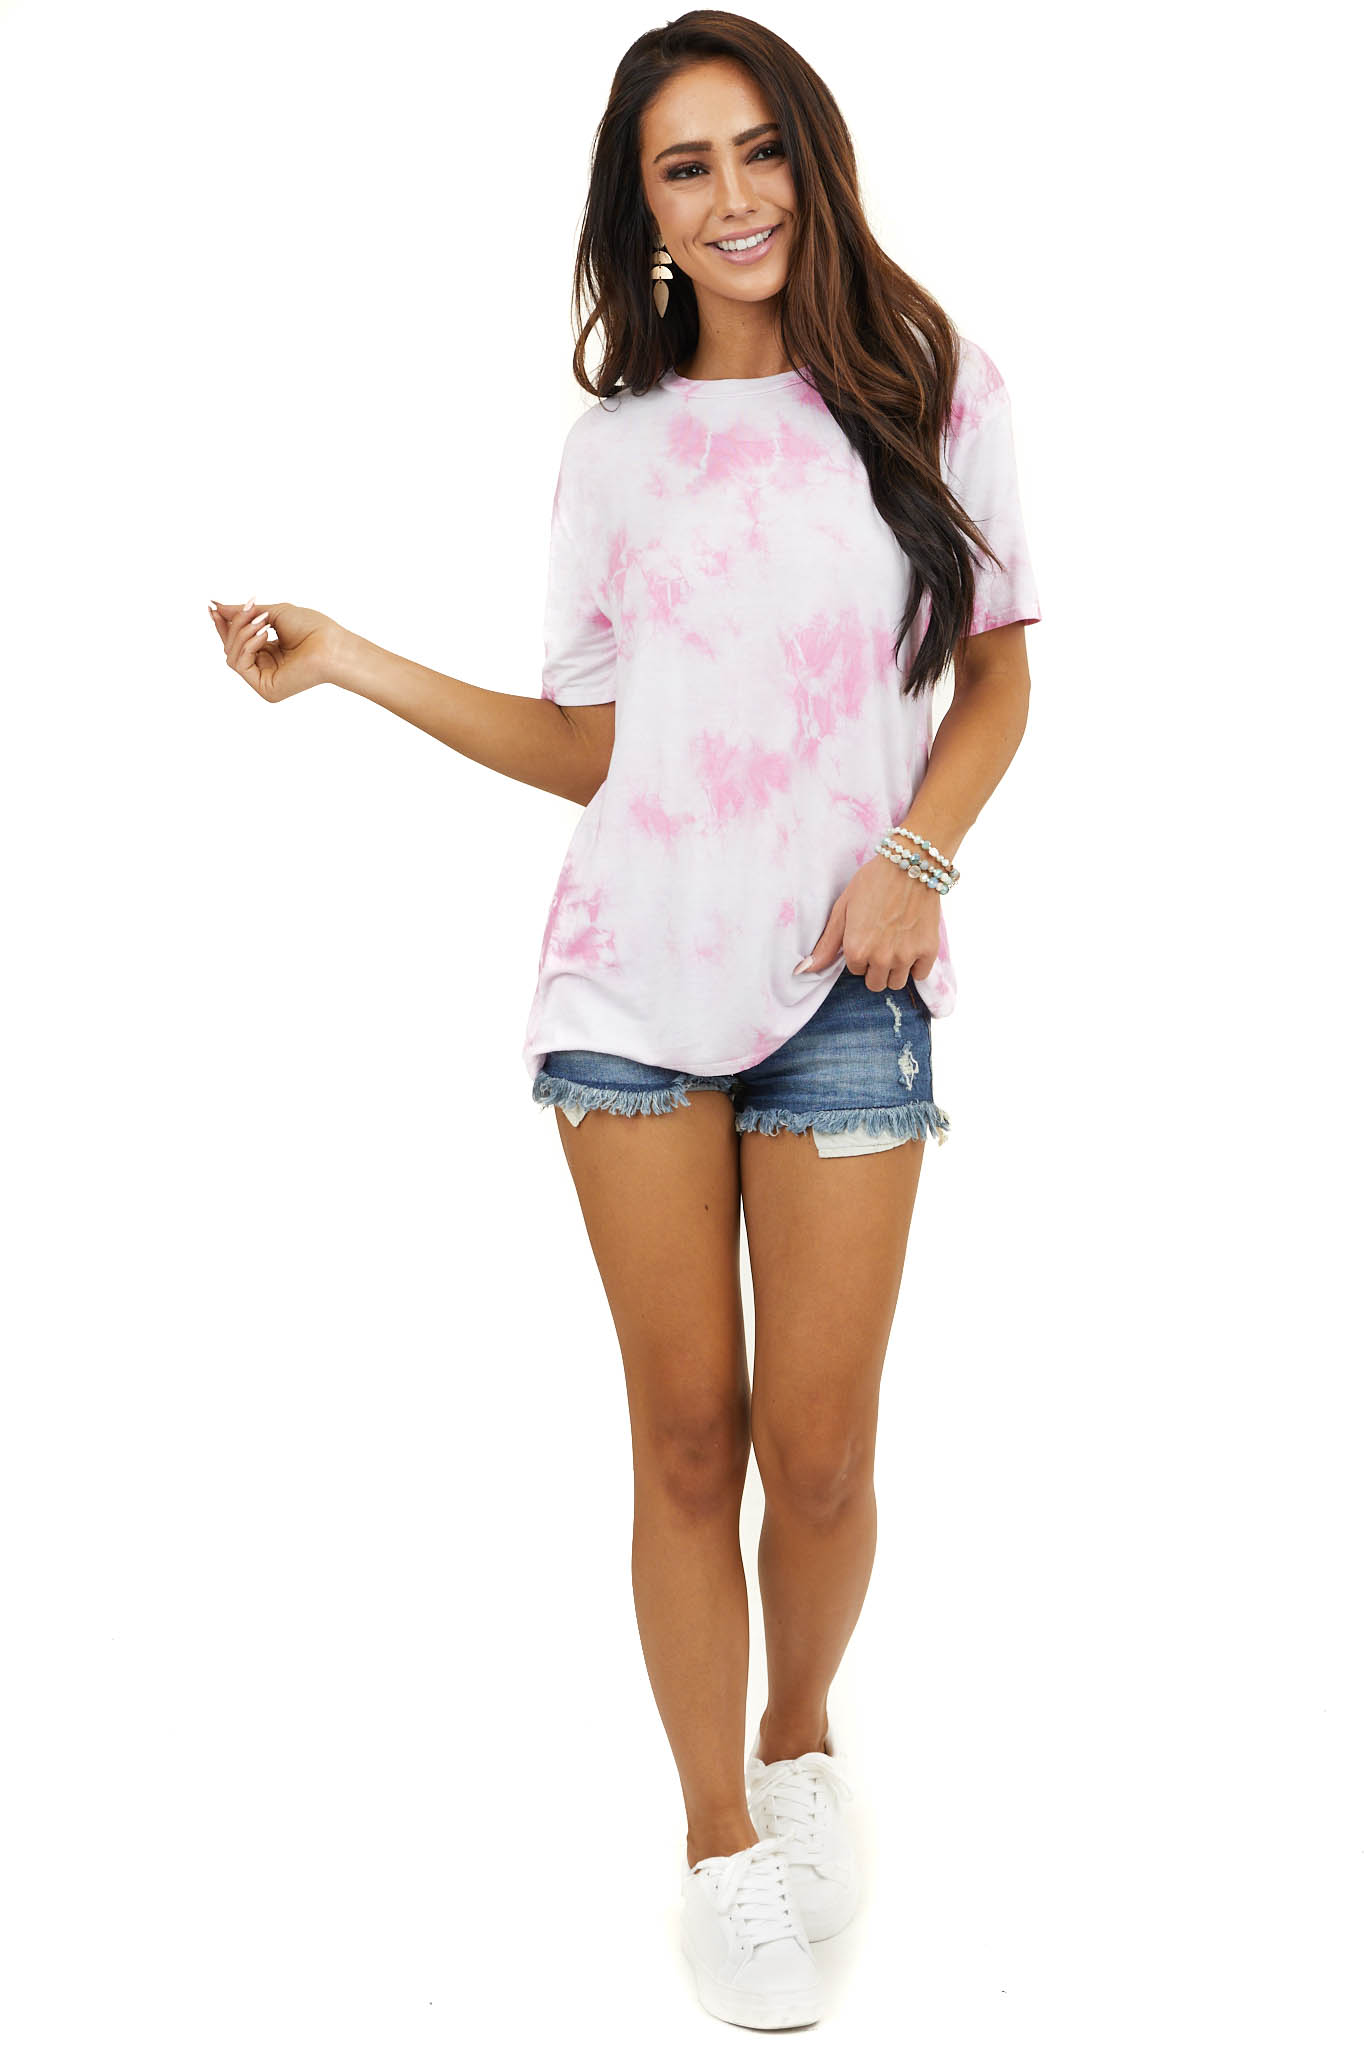 Pale Pink Tie Dye Short Sleeve Top with Rounded Neckline